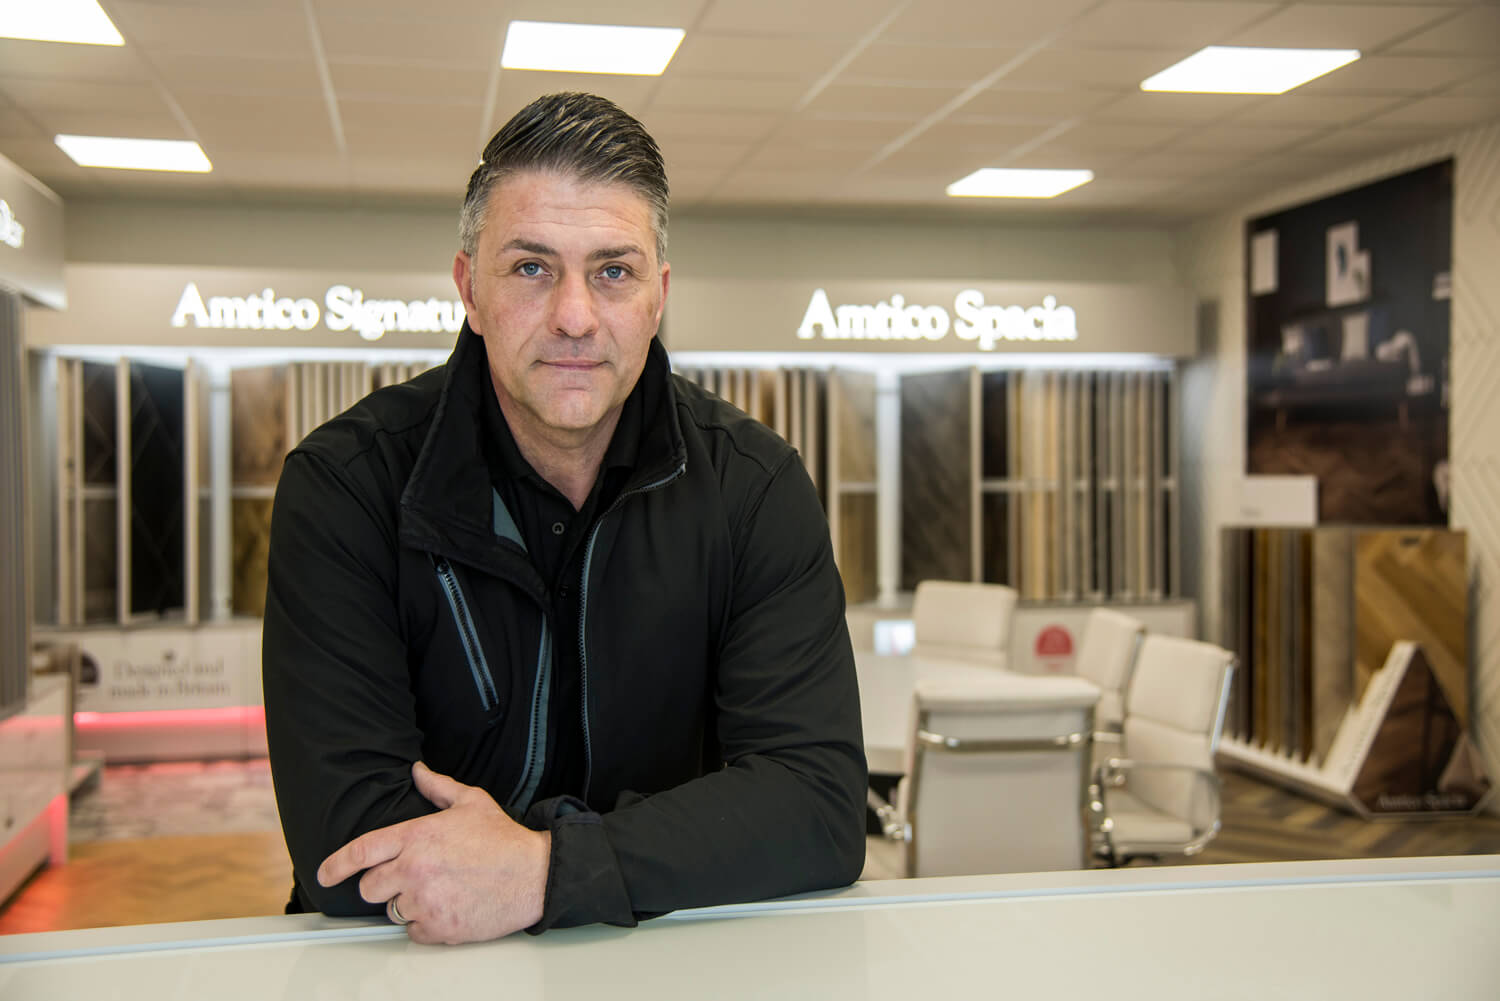 Amtico Floor Fitter in Coventry, Portrait Photographer